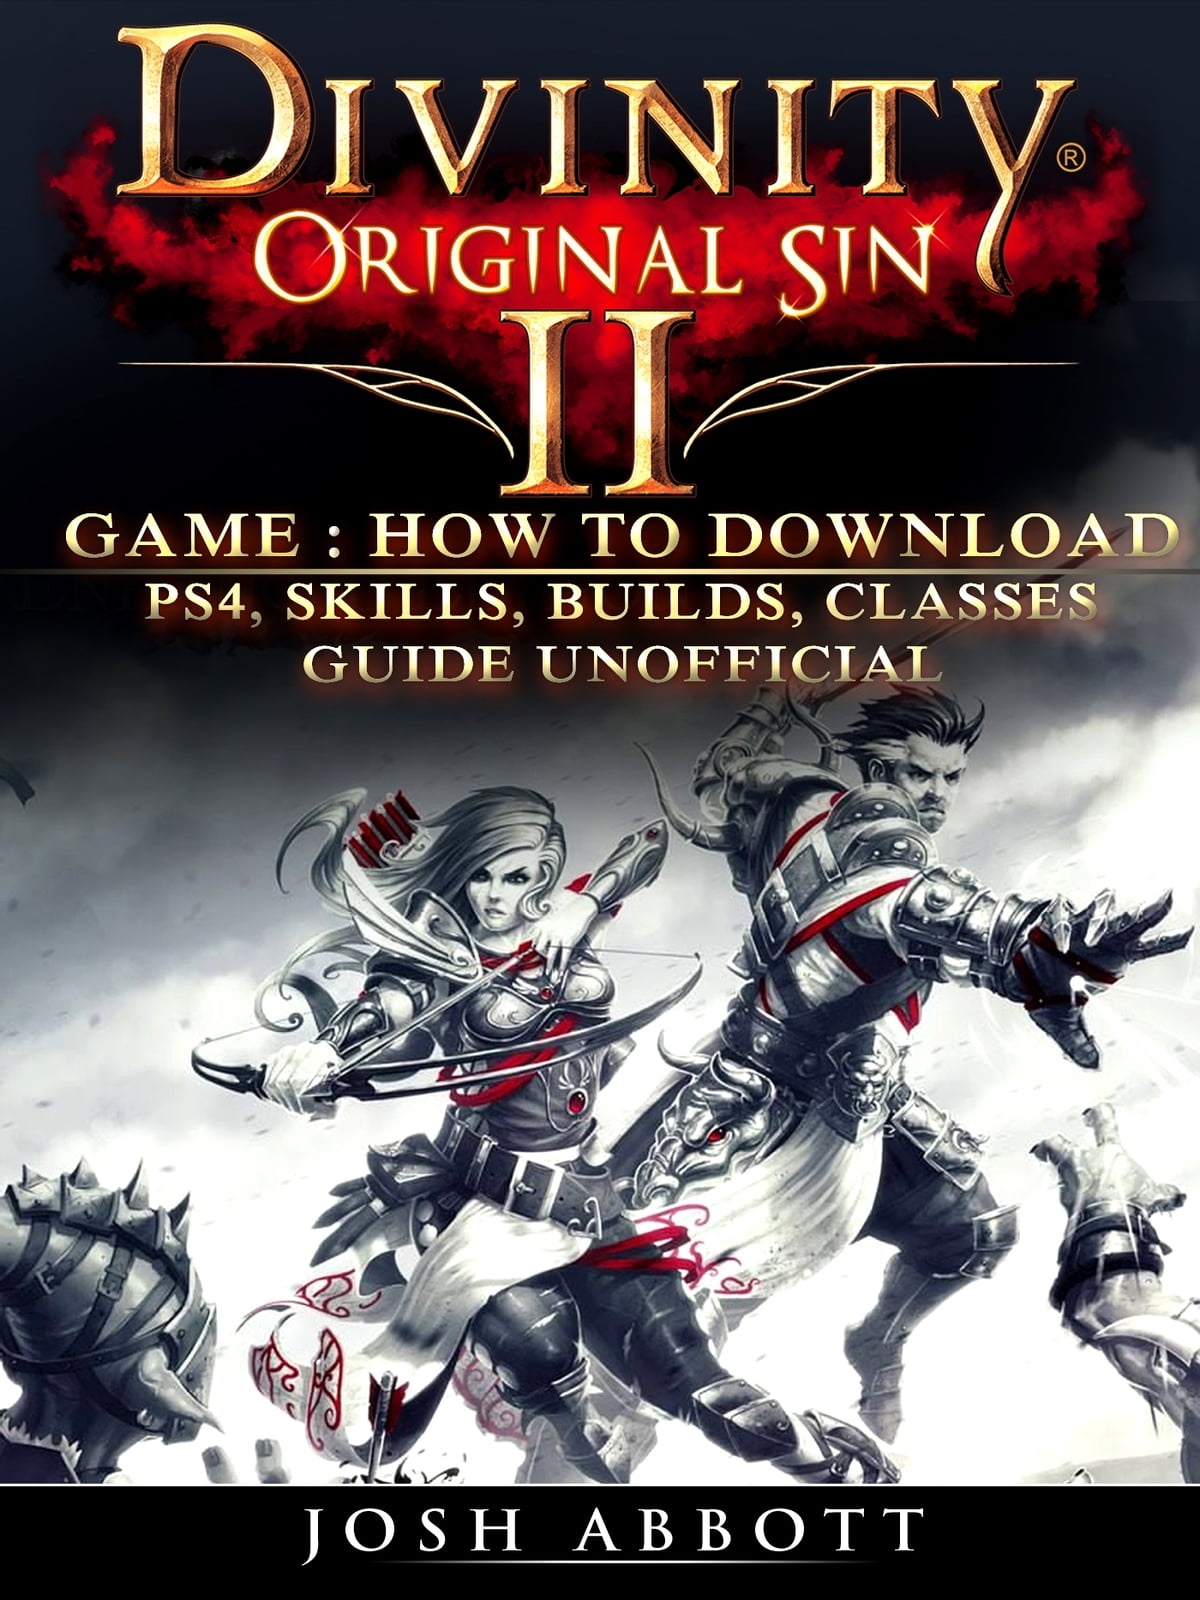 Divinity Original Sin 2 Game: How to Download, PS4, Skills, Builds,  Classes, Guide Unofficial ebook by Josh Abbott - Rakuten Kobo